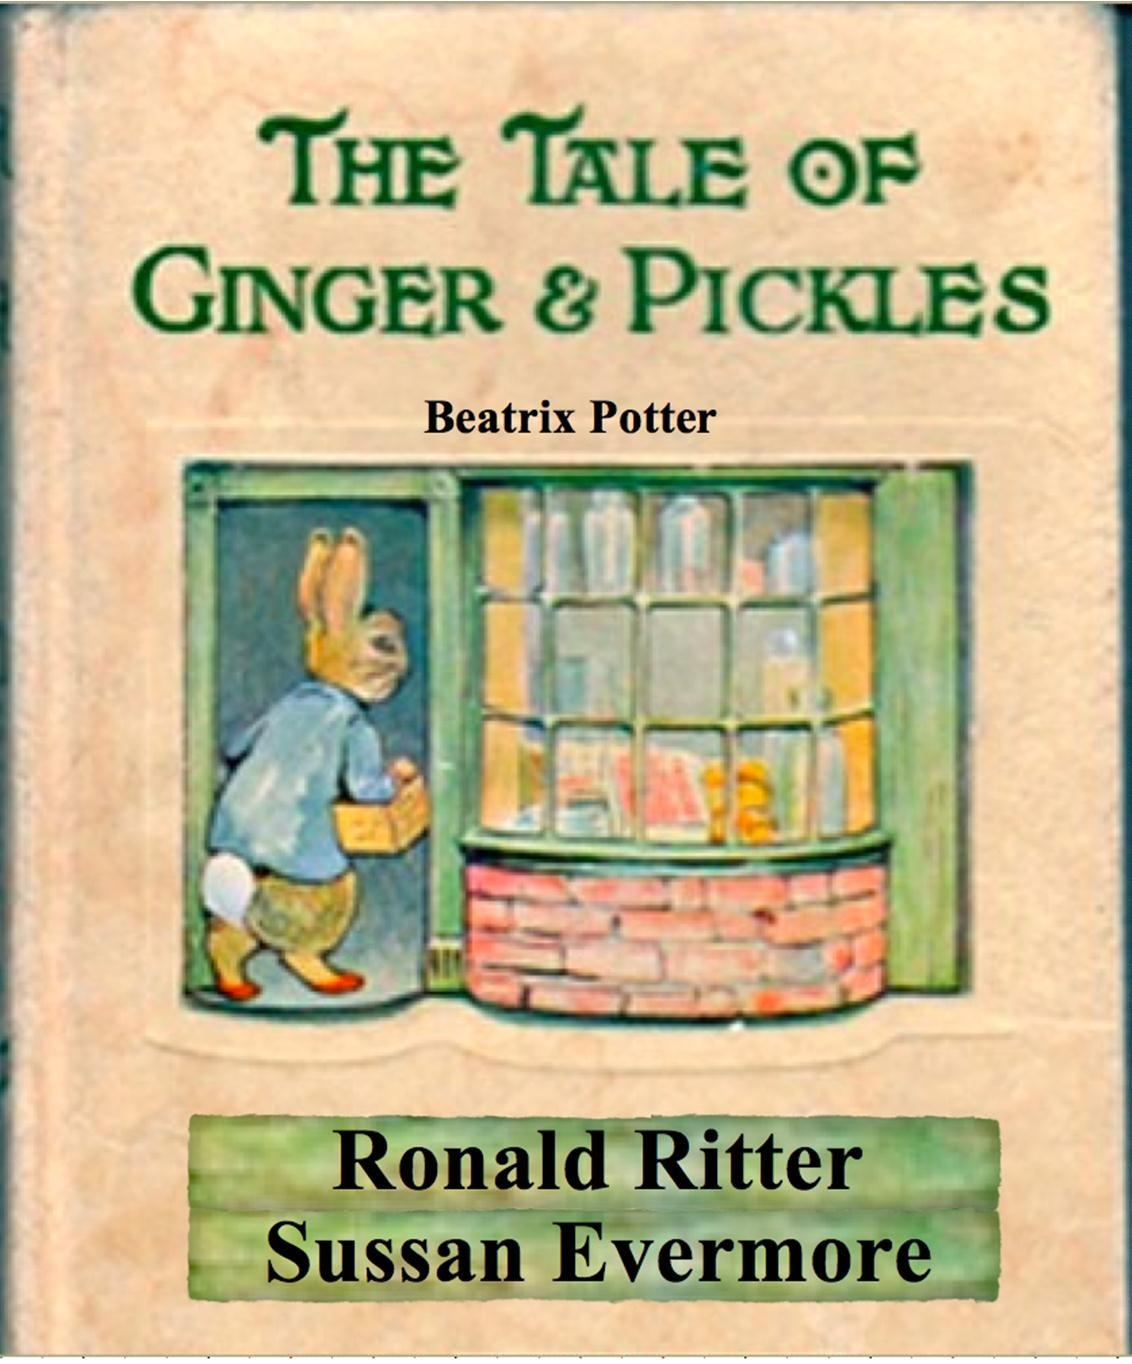 The Tale of Ginger & Pickles & Beatrix Potter, the lady in The Mist